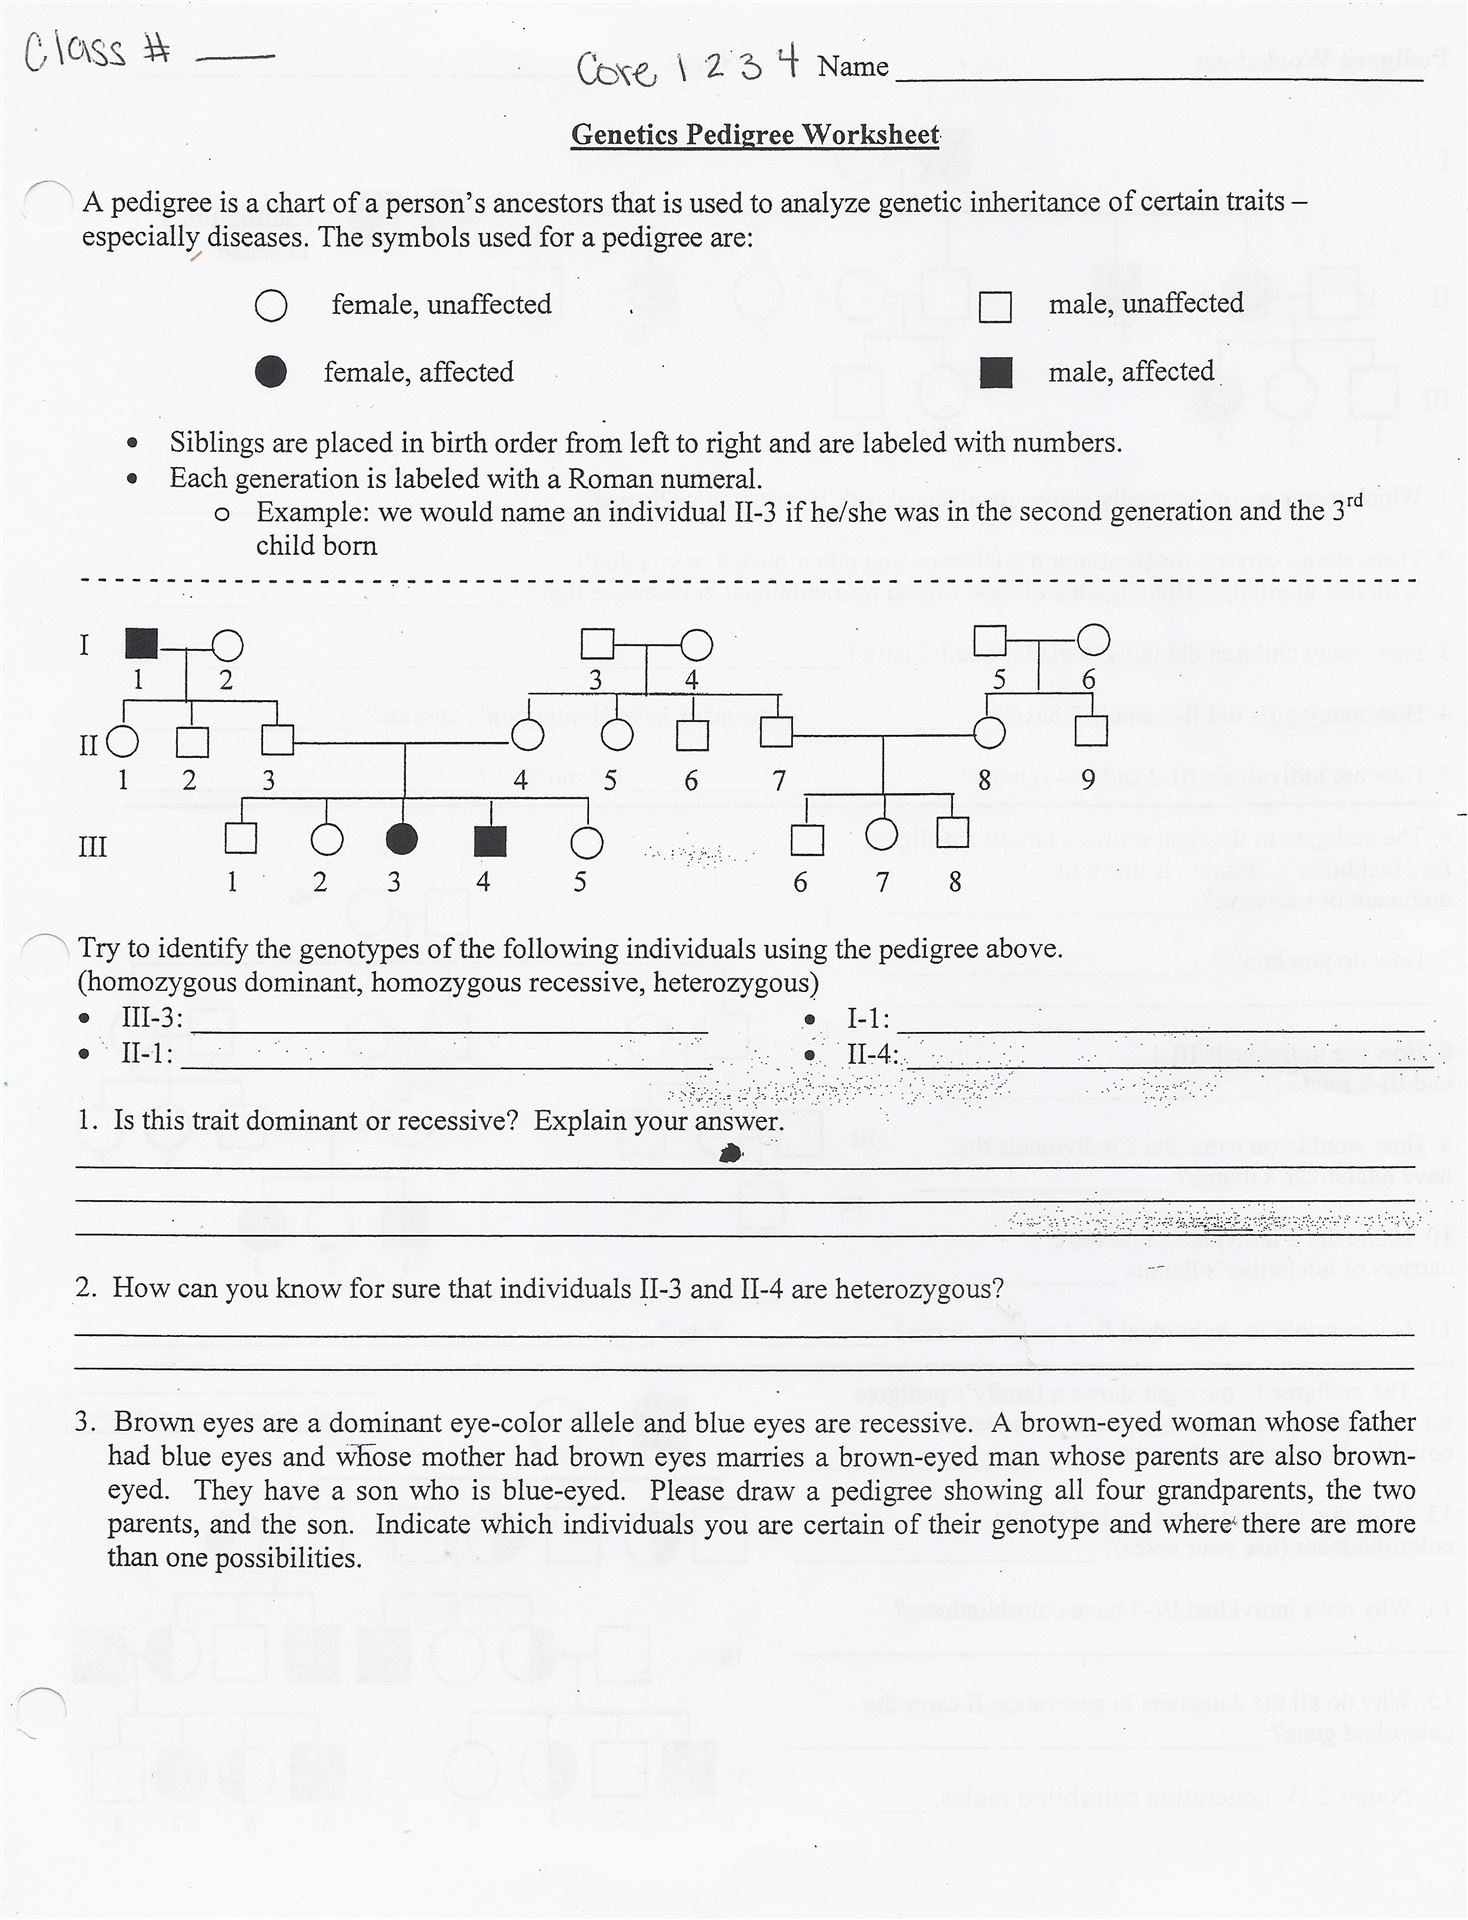 Printables Pedigree Charts Worksheet pedigree worksheet imperialdesignstudio answer key on genetics answers